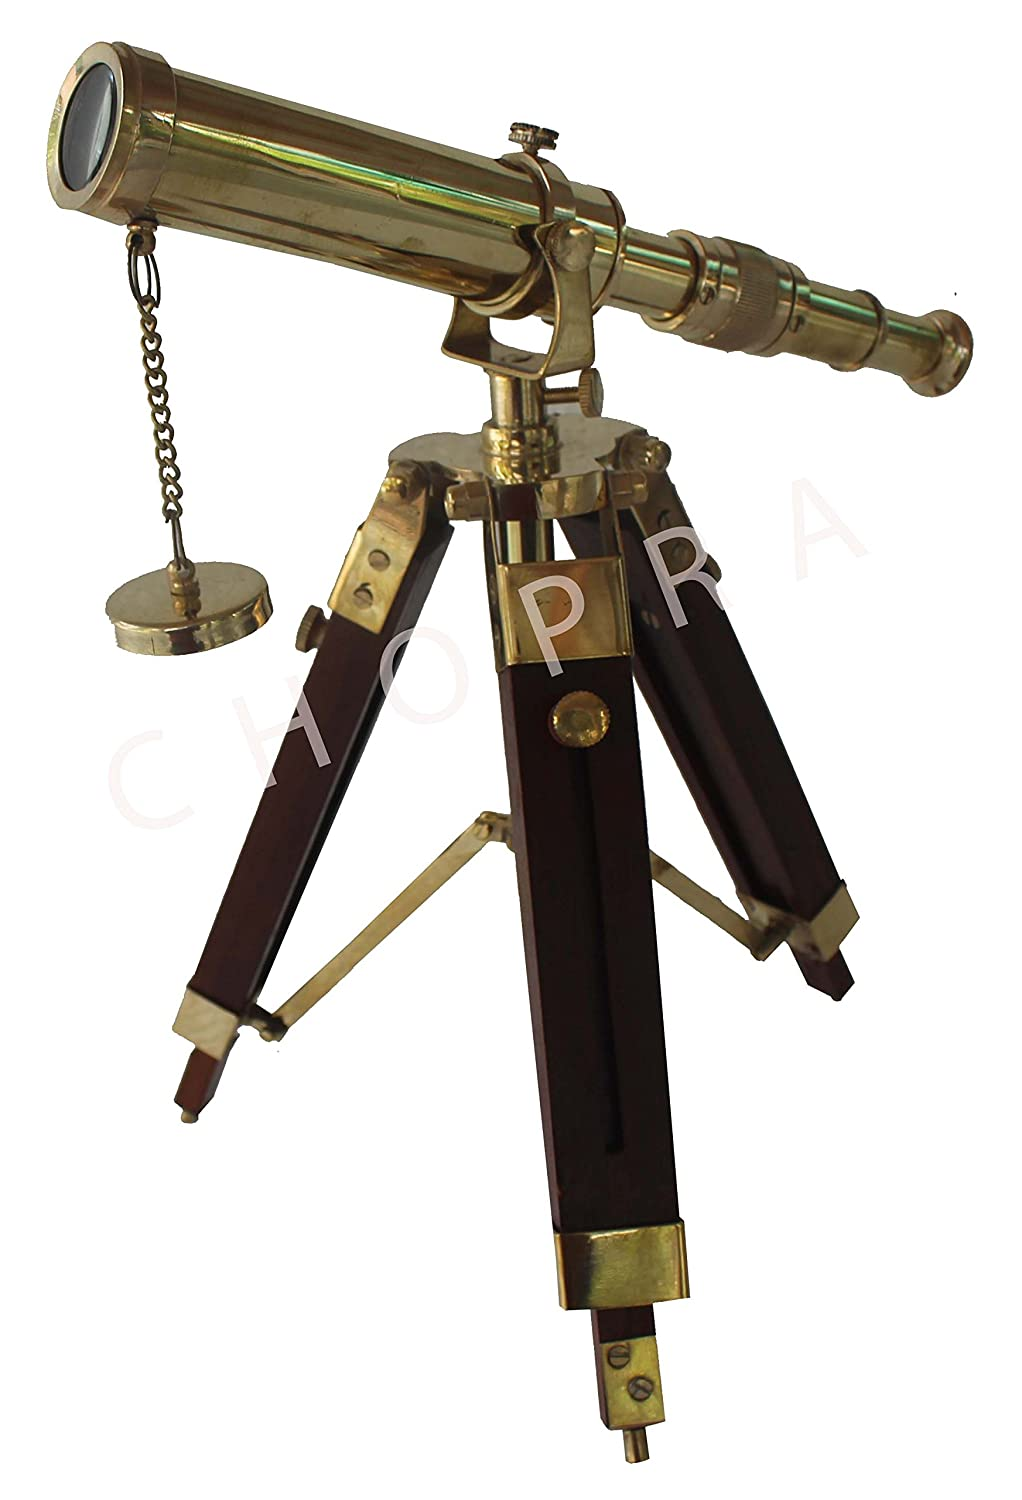 Chopra Vintage Antique Tripod Telescope Brass SB Nautical Telescopes Harbour master stand